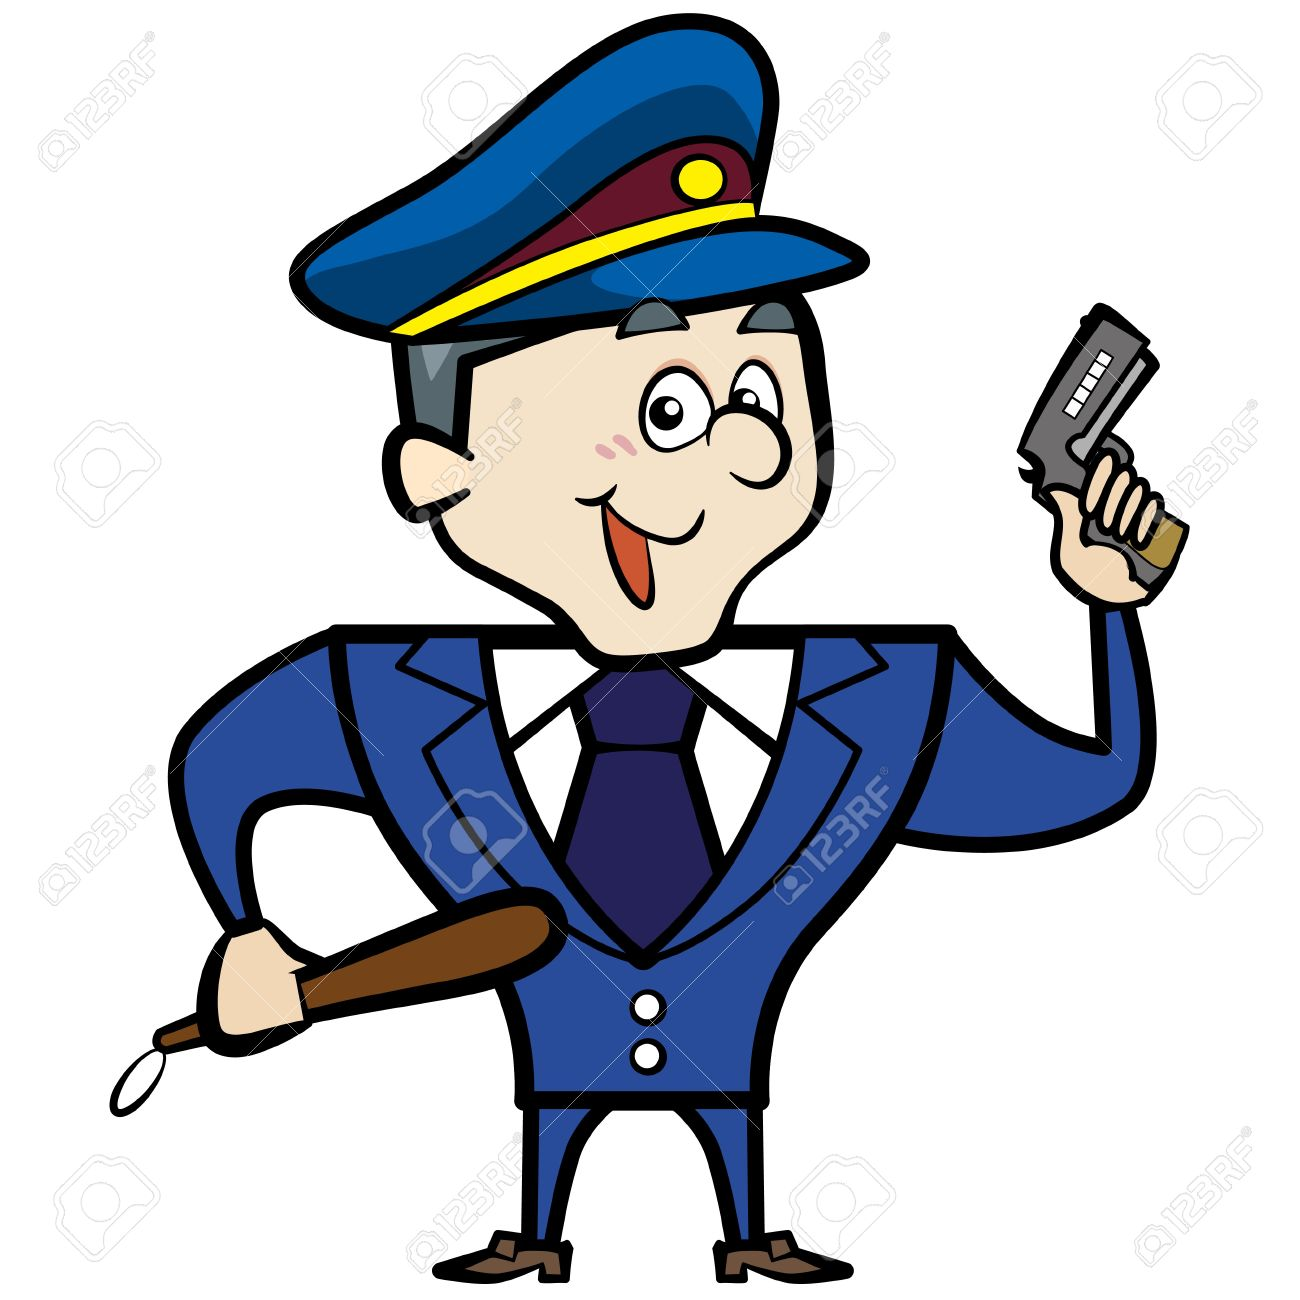 Cartoon Police Officer Man With Gun Royalty Free Cliparts, Vectors ...